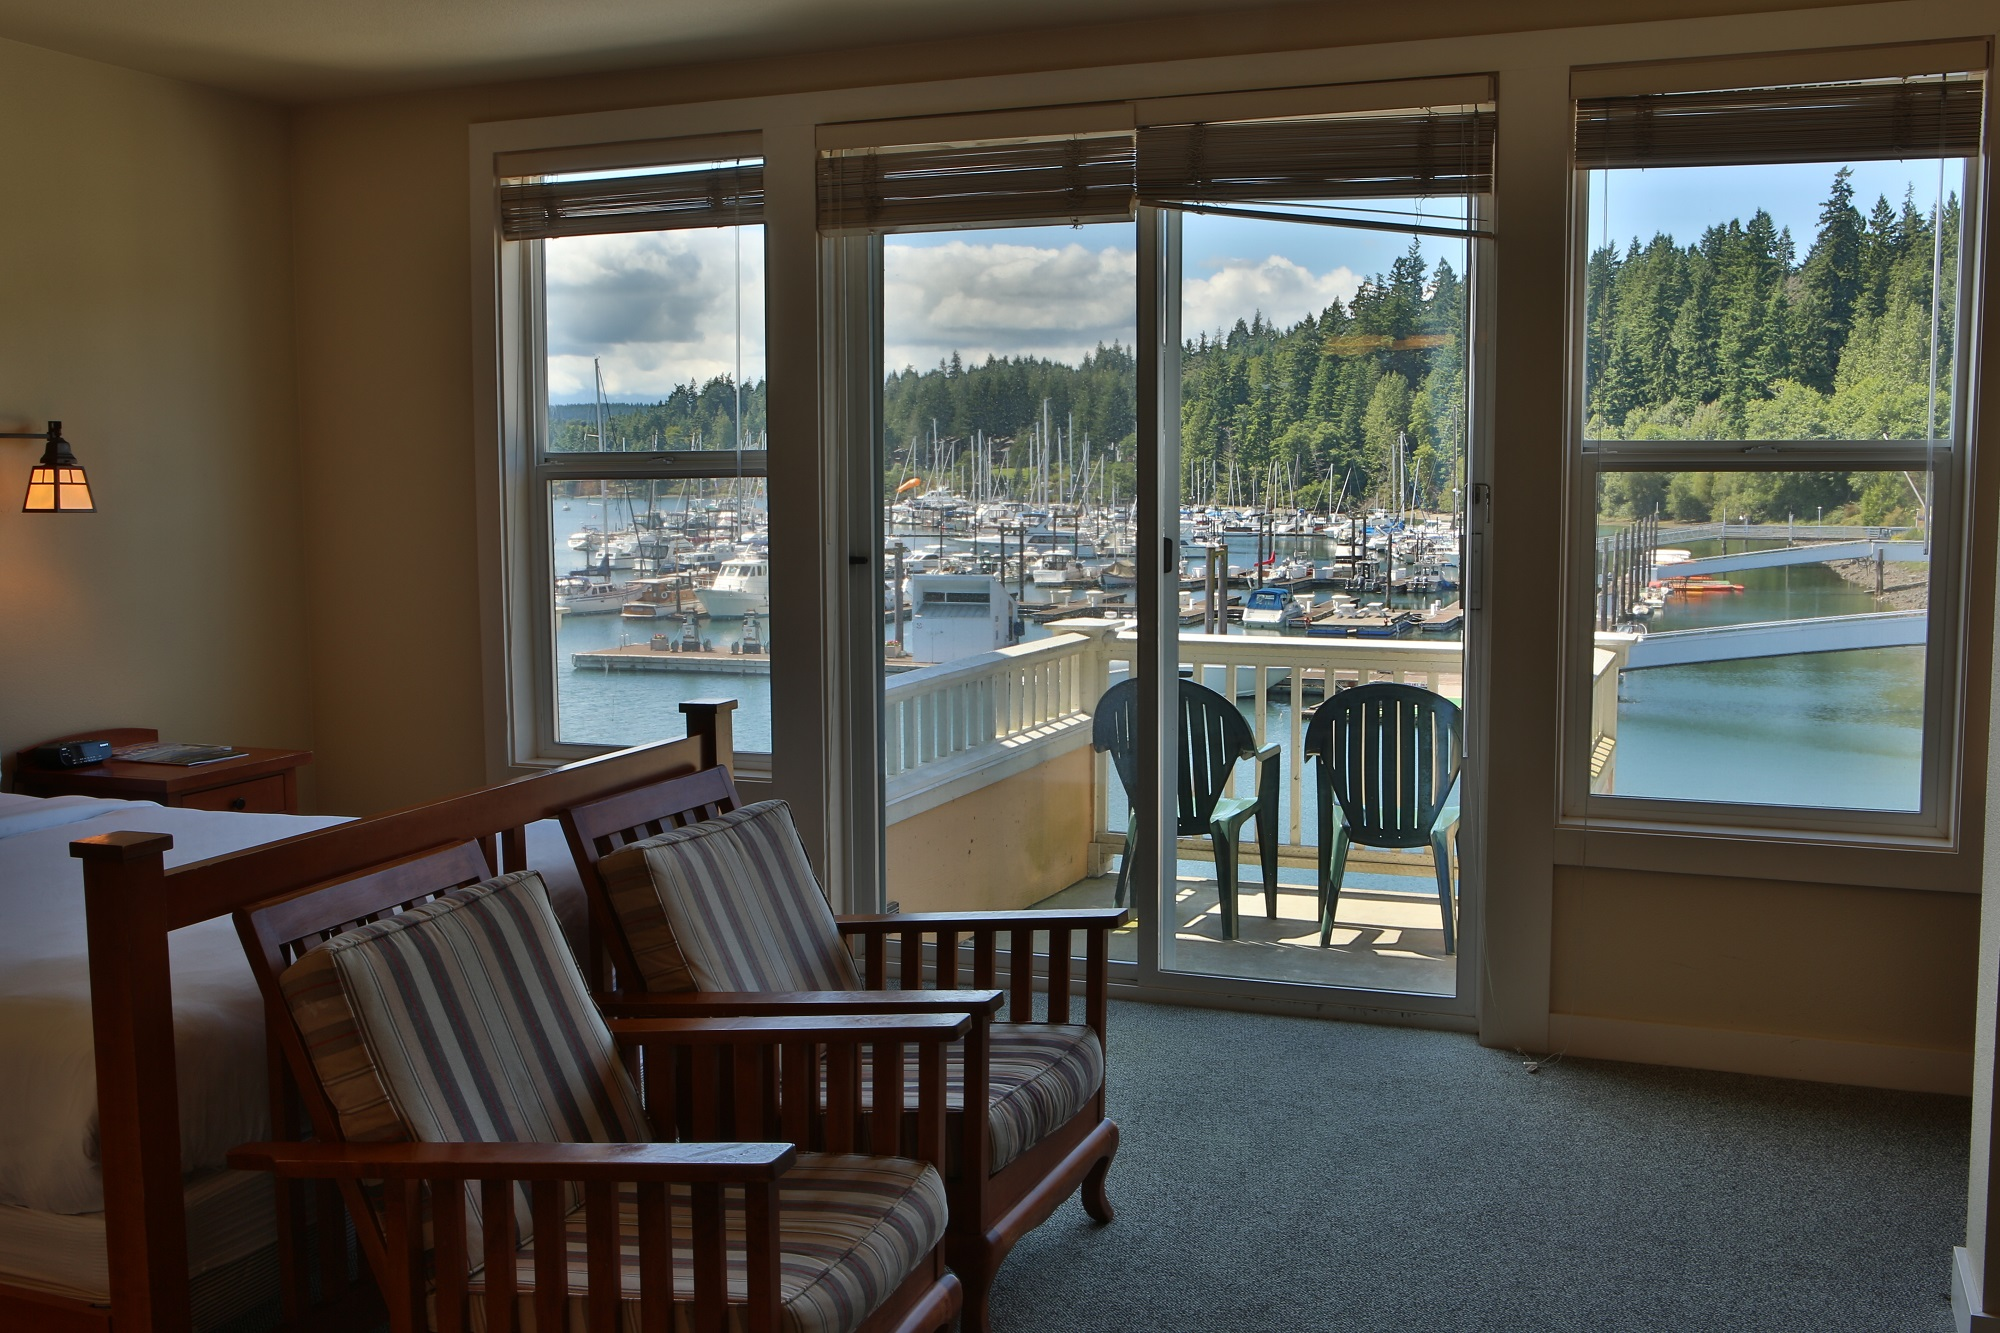 Balcony, Marina, Guest Room, Lodging, Olympic Peninsula, Resort